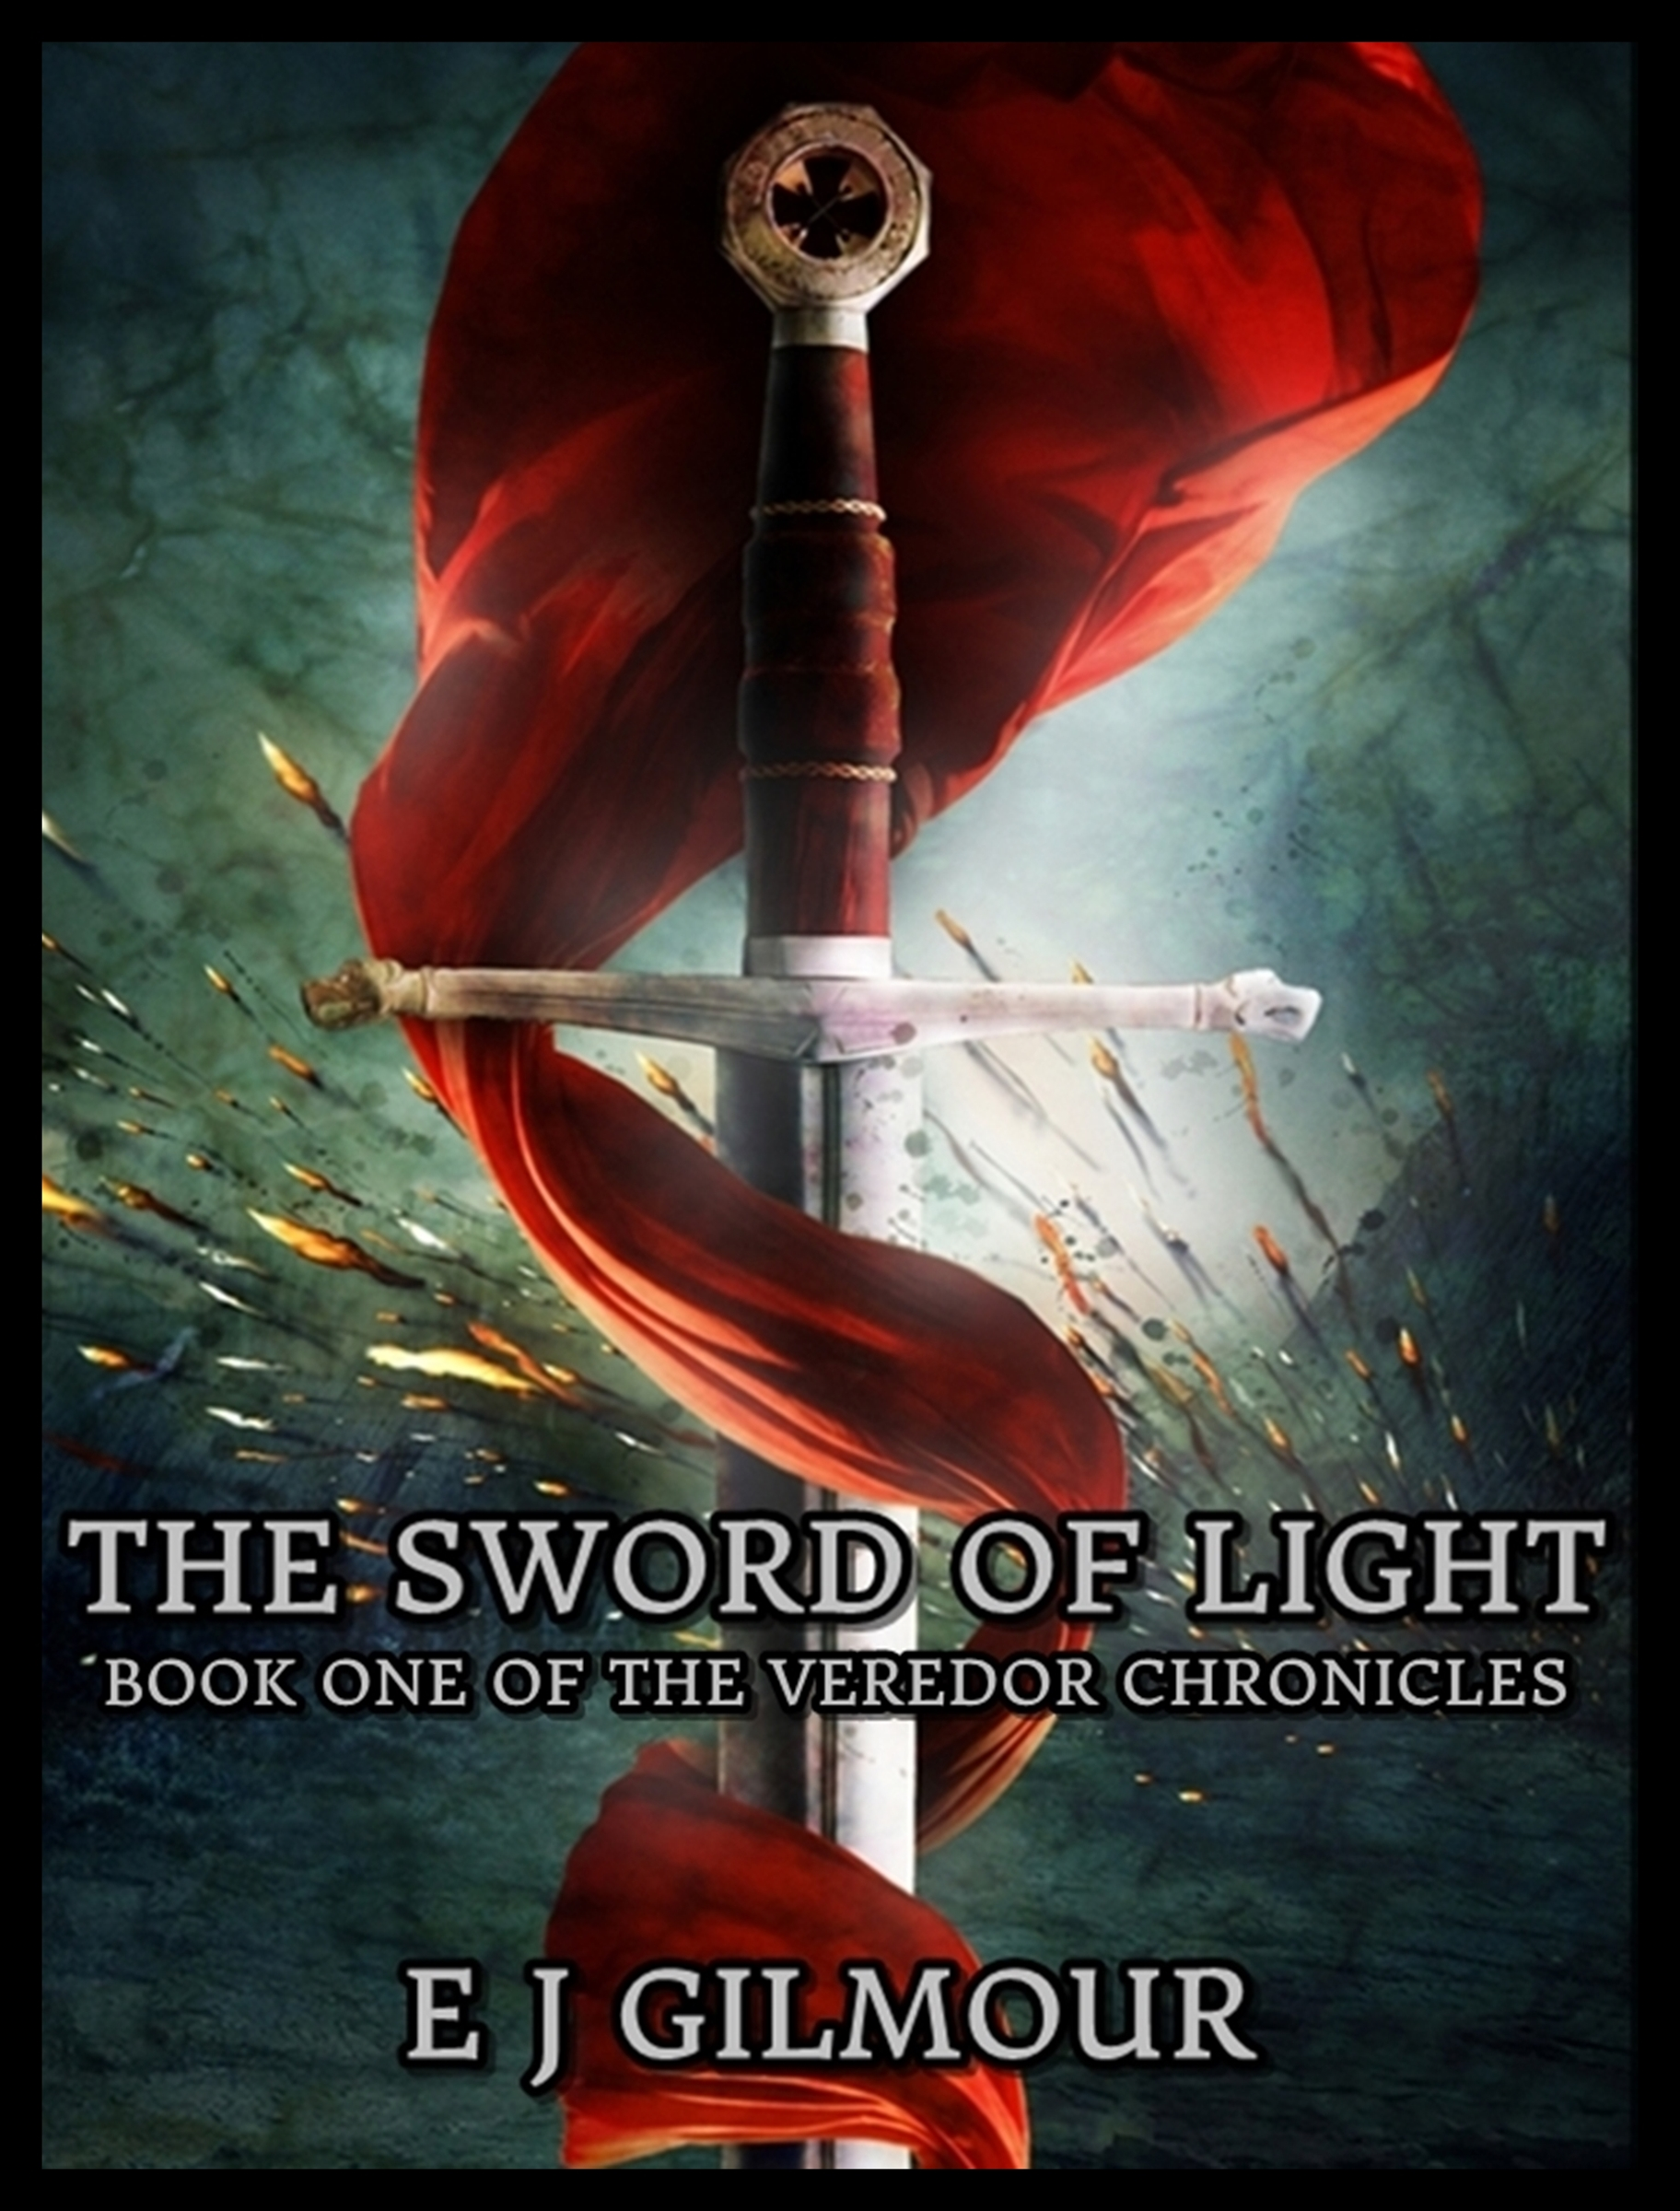 The Sword of Light: Book One of the Veredor Chronicles (sst-lxxv)